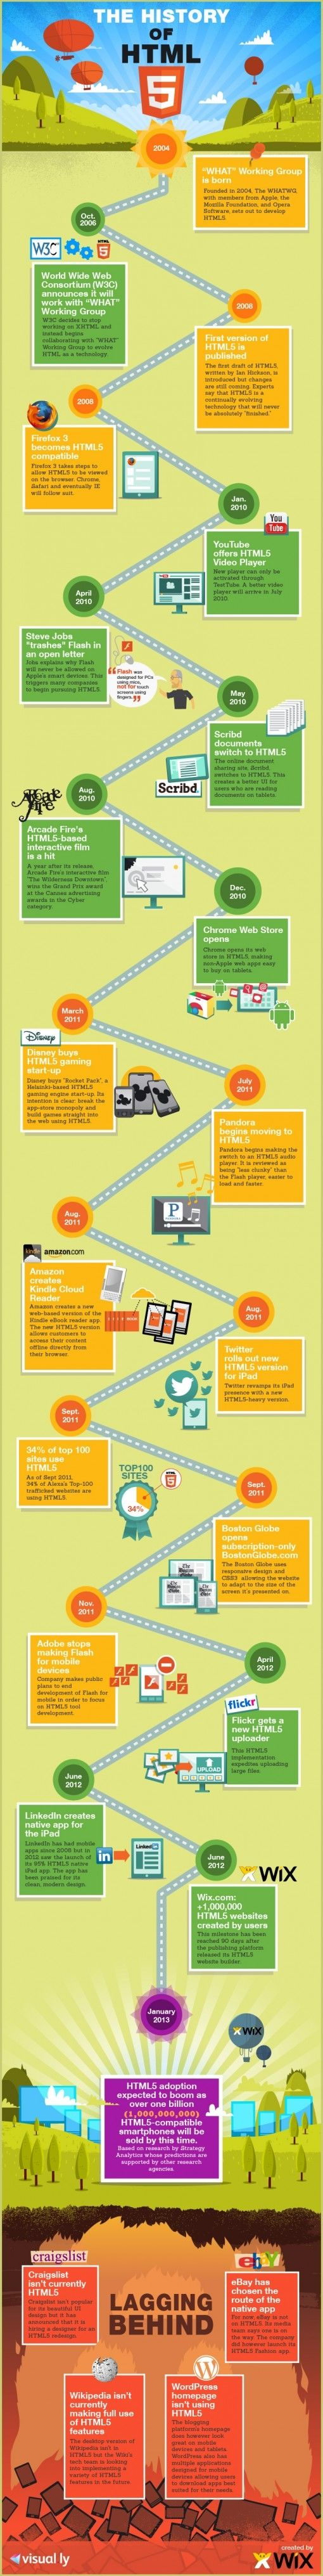 TheHistoryofHTML5